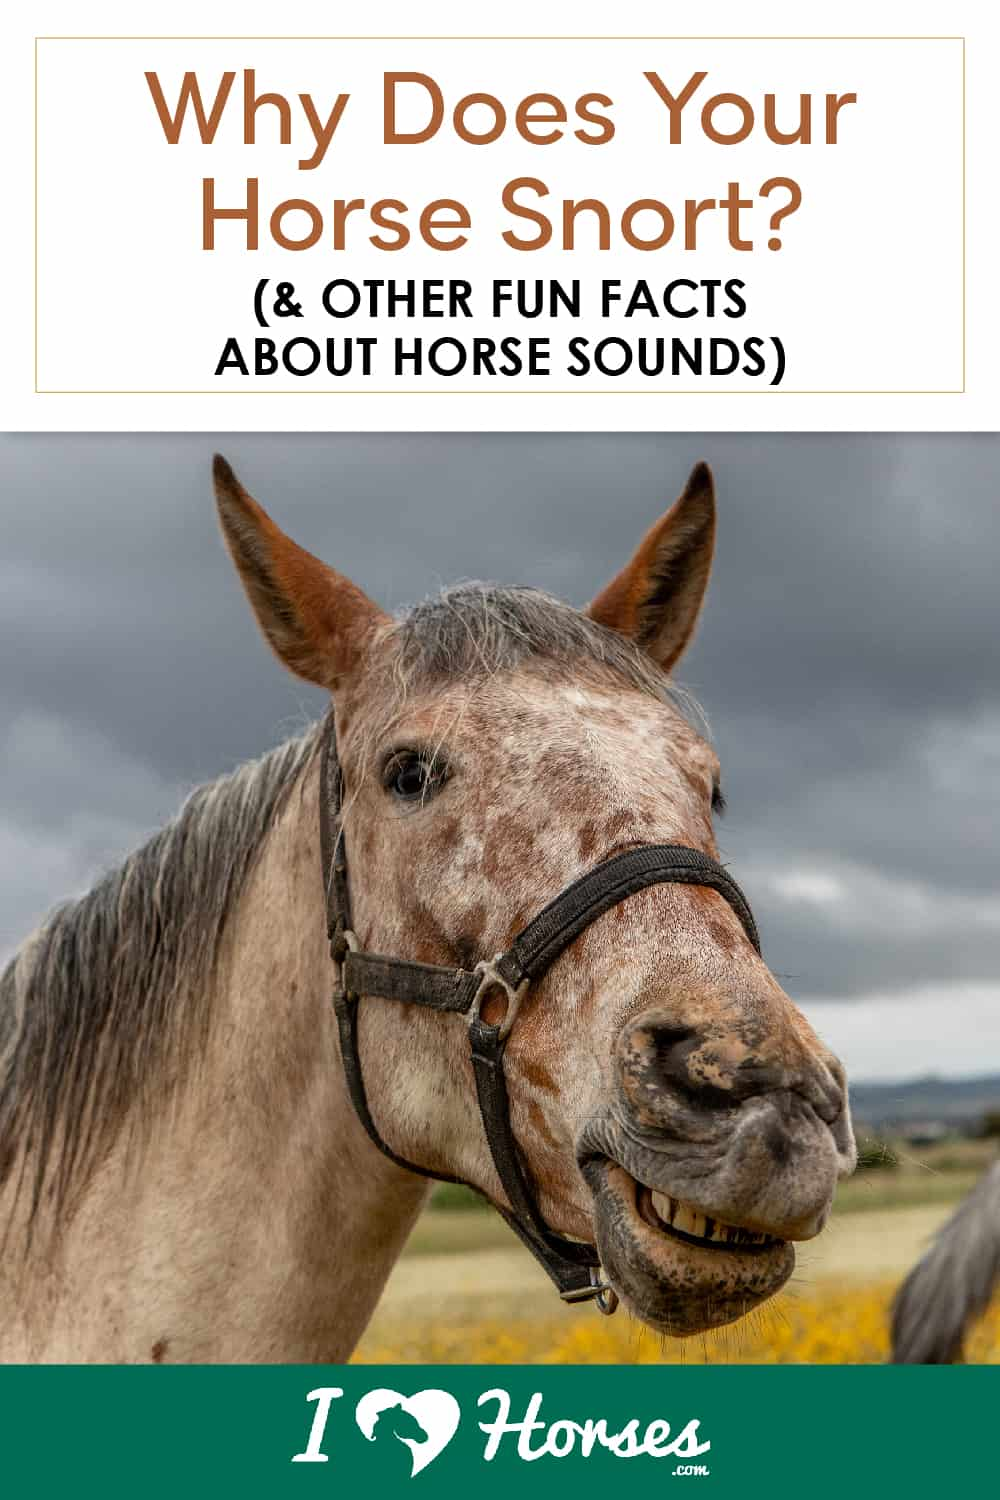 6 Common Horse Sounds & What They Mean